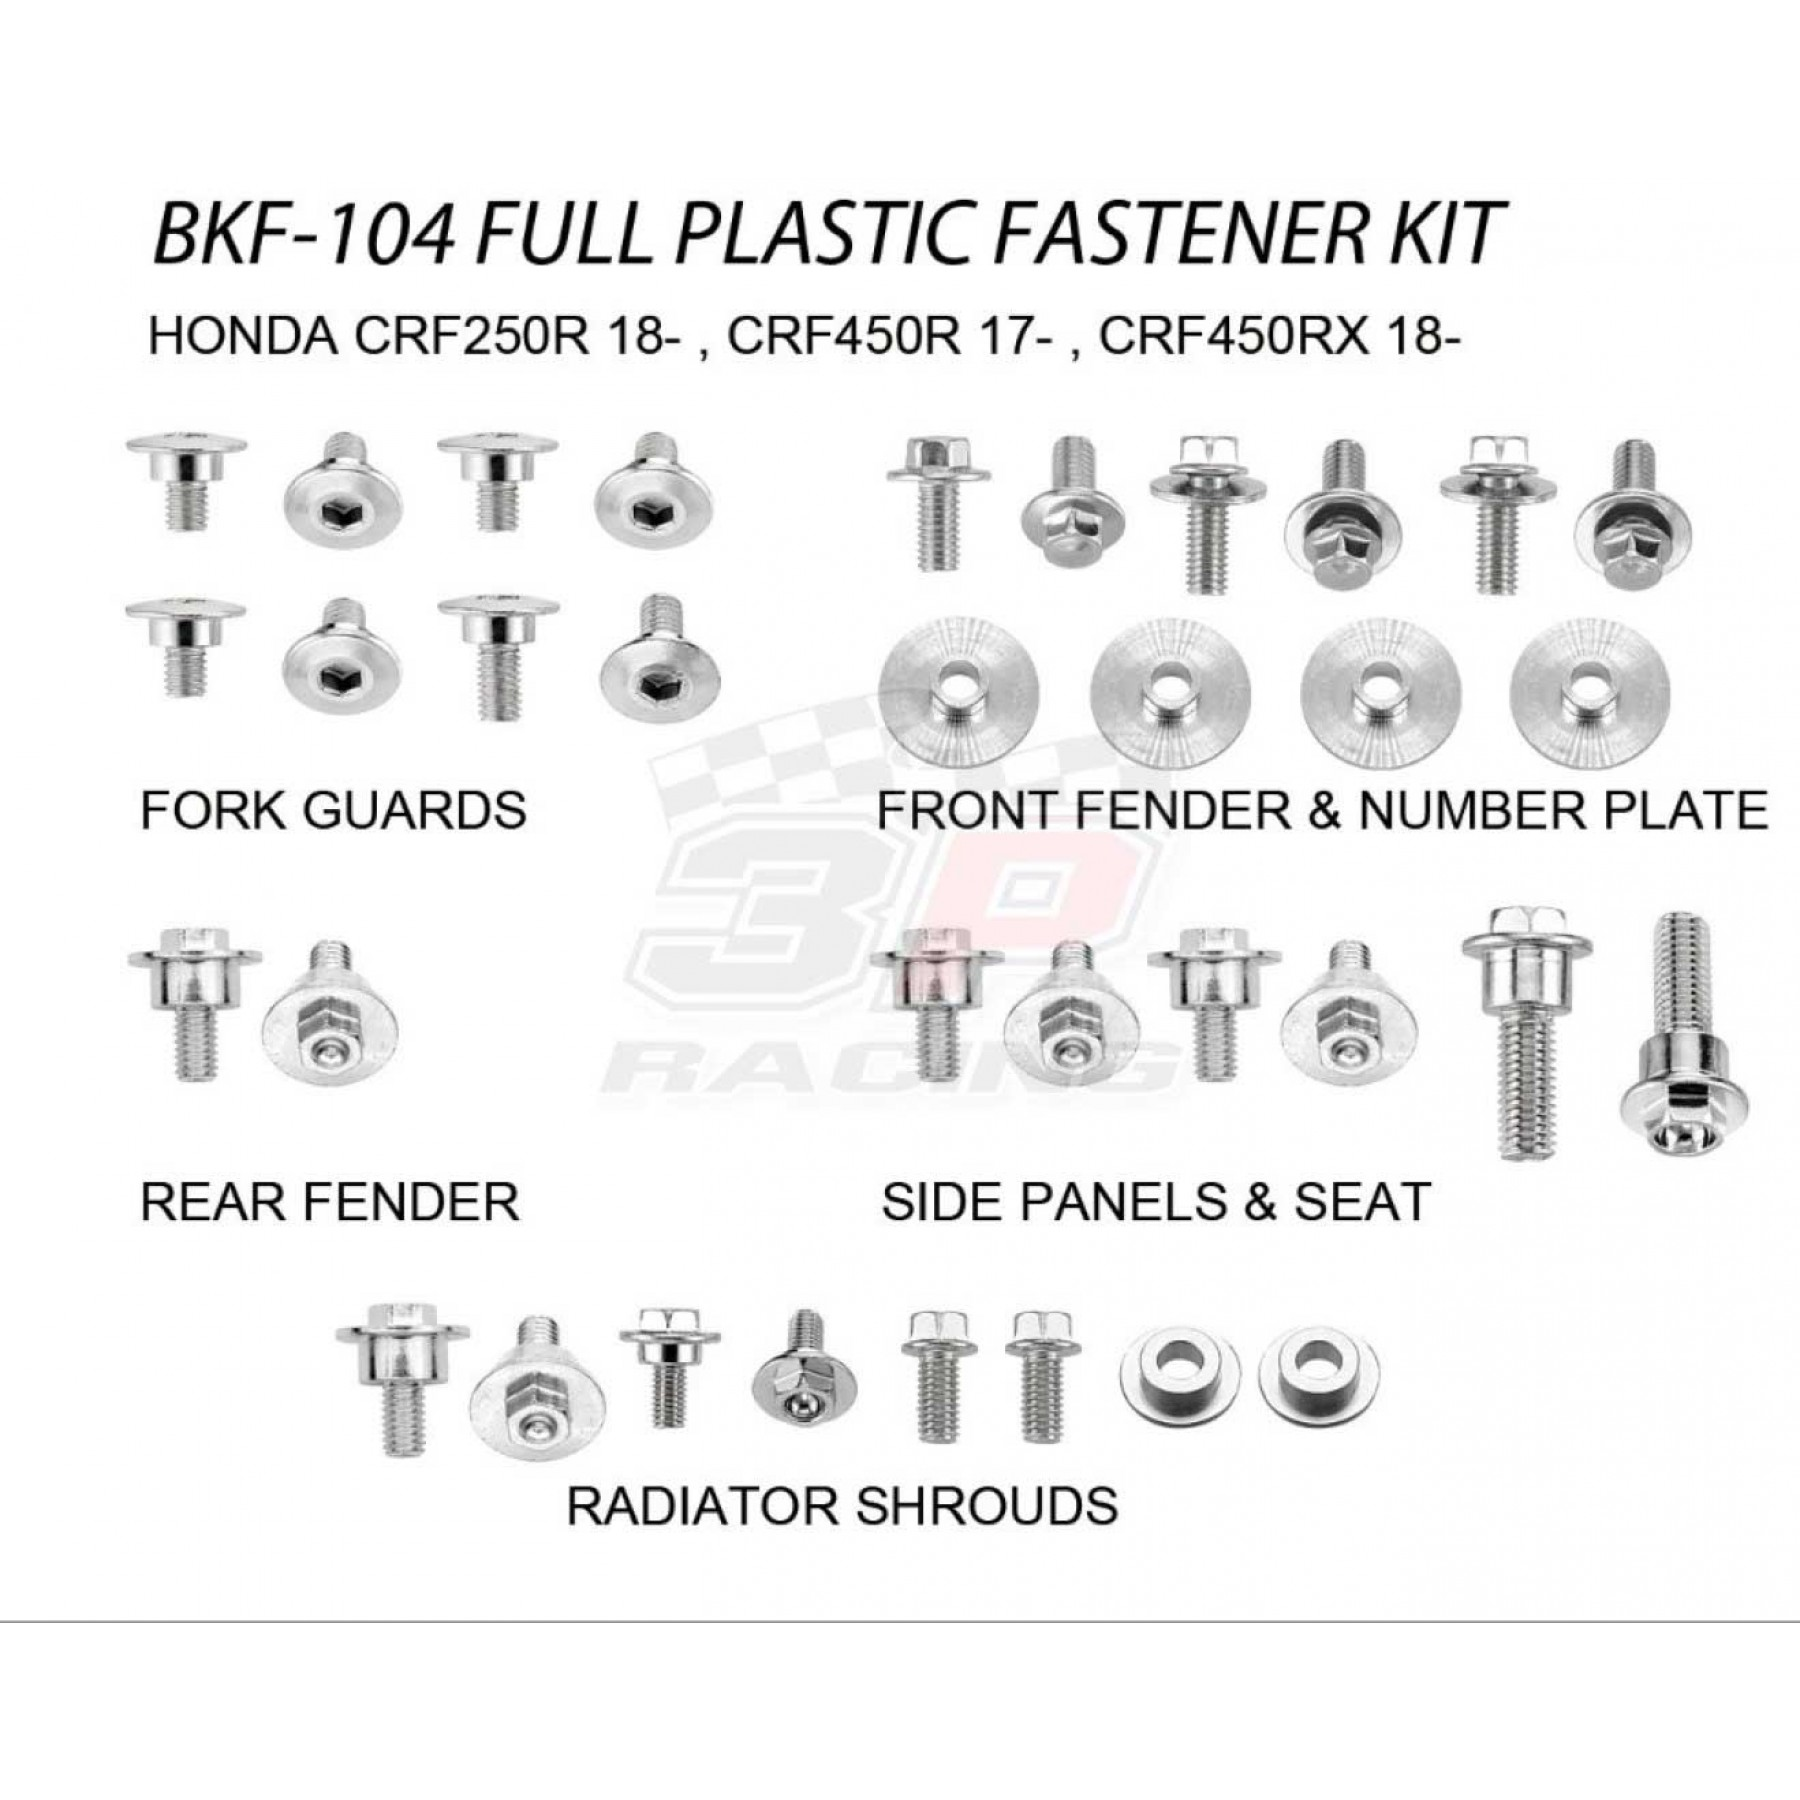 Accel complete plastic parts fastener bolts kit for Honda CRF250 CRF250R 2018-2020, CRF450 CRF450R 2017-2020, CRF450RX 2018-2020. Bolts, nuts & spacers for front fender,number plate,radiator shrouds,side panels & seat,fork guards,rear fender.AC-BKF-104